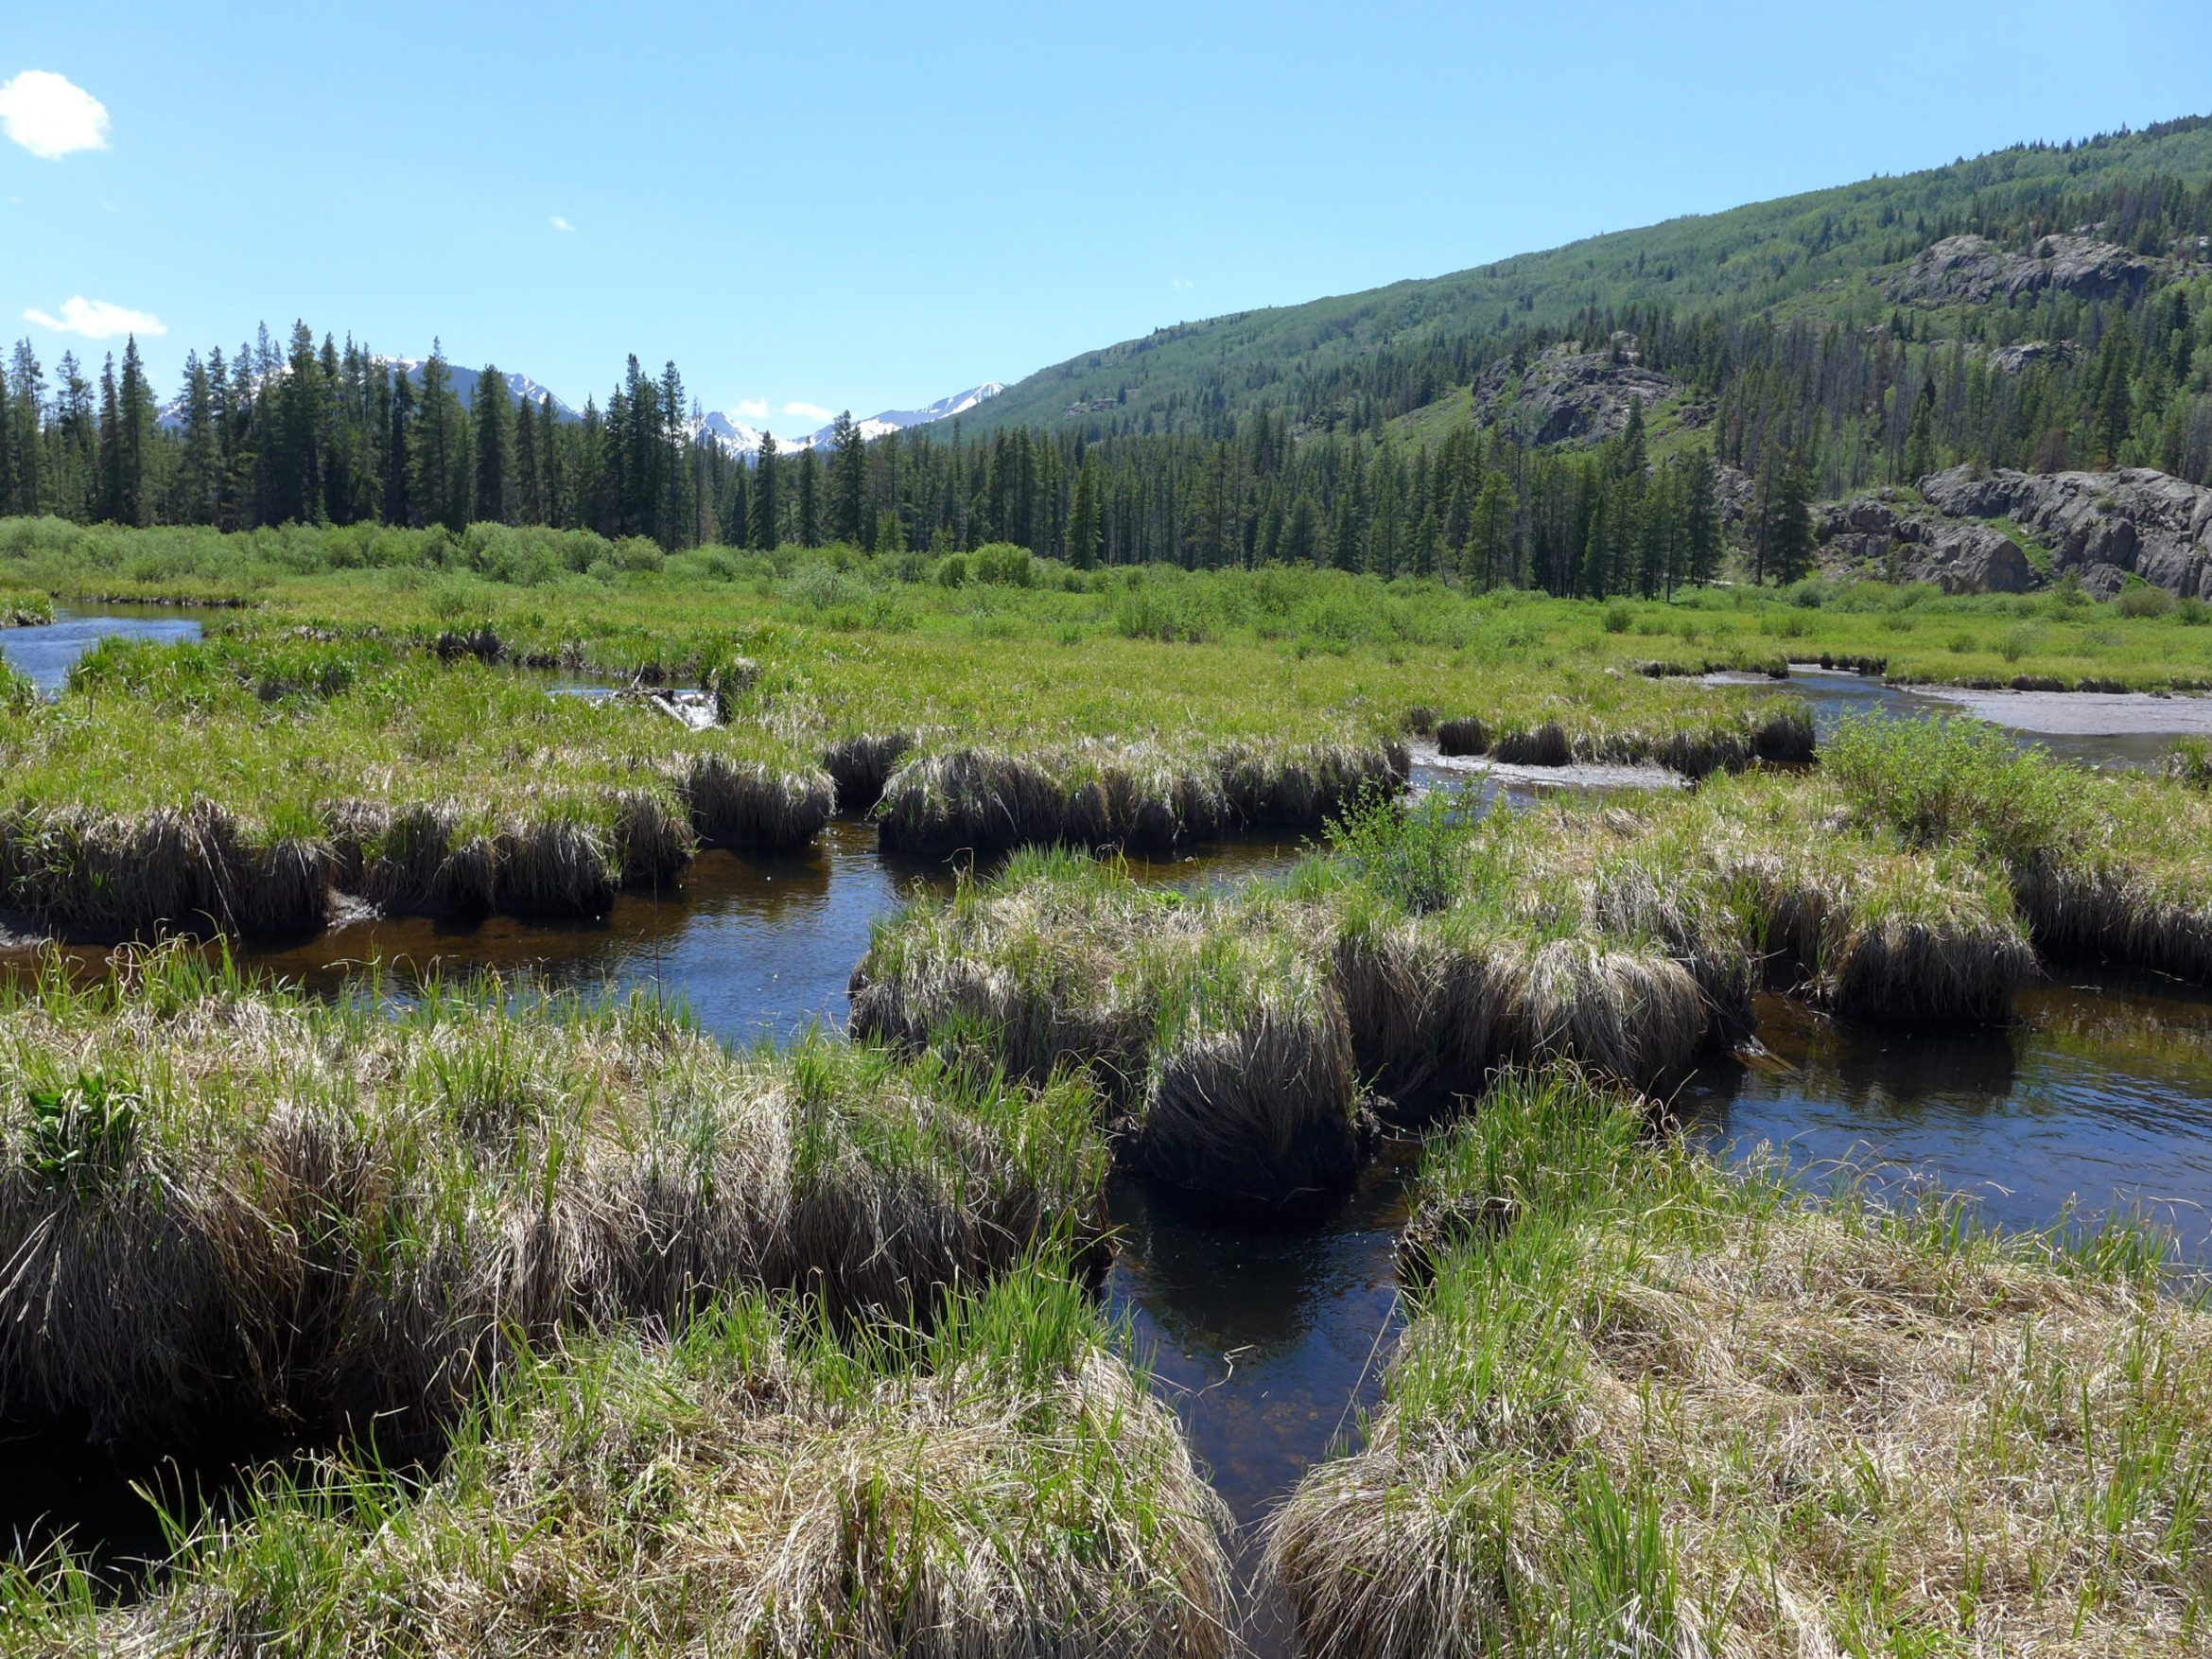 Forest Service approves test drilling for Whitney Reservoir site